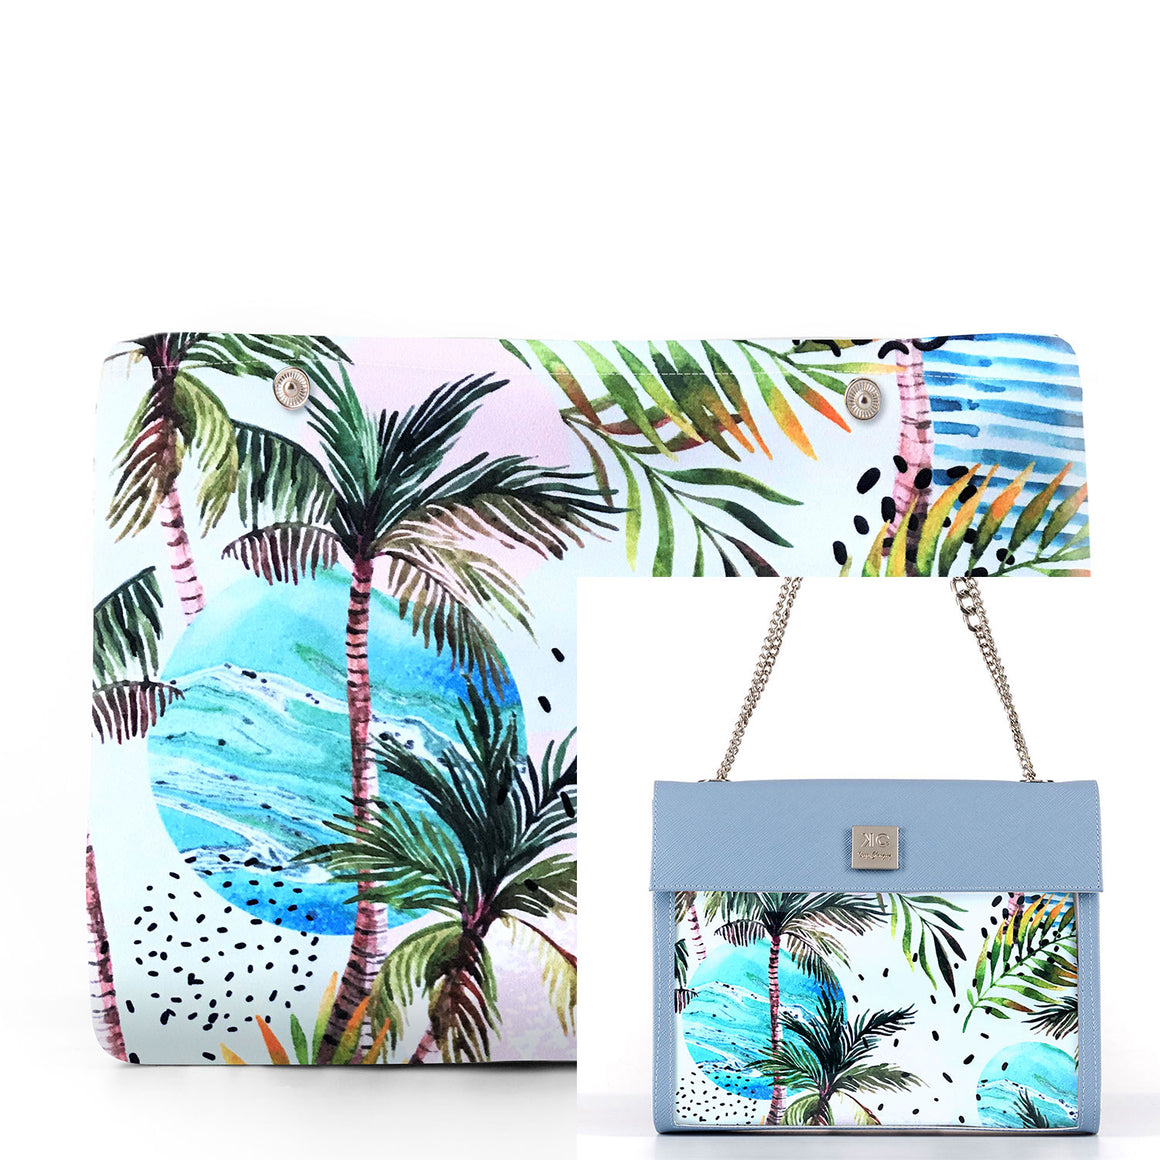 Miami - Fabric Insert (Shoulder Bag)